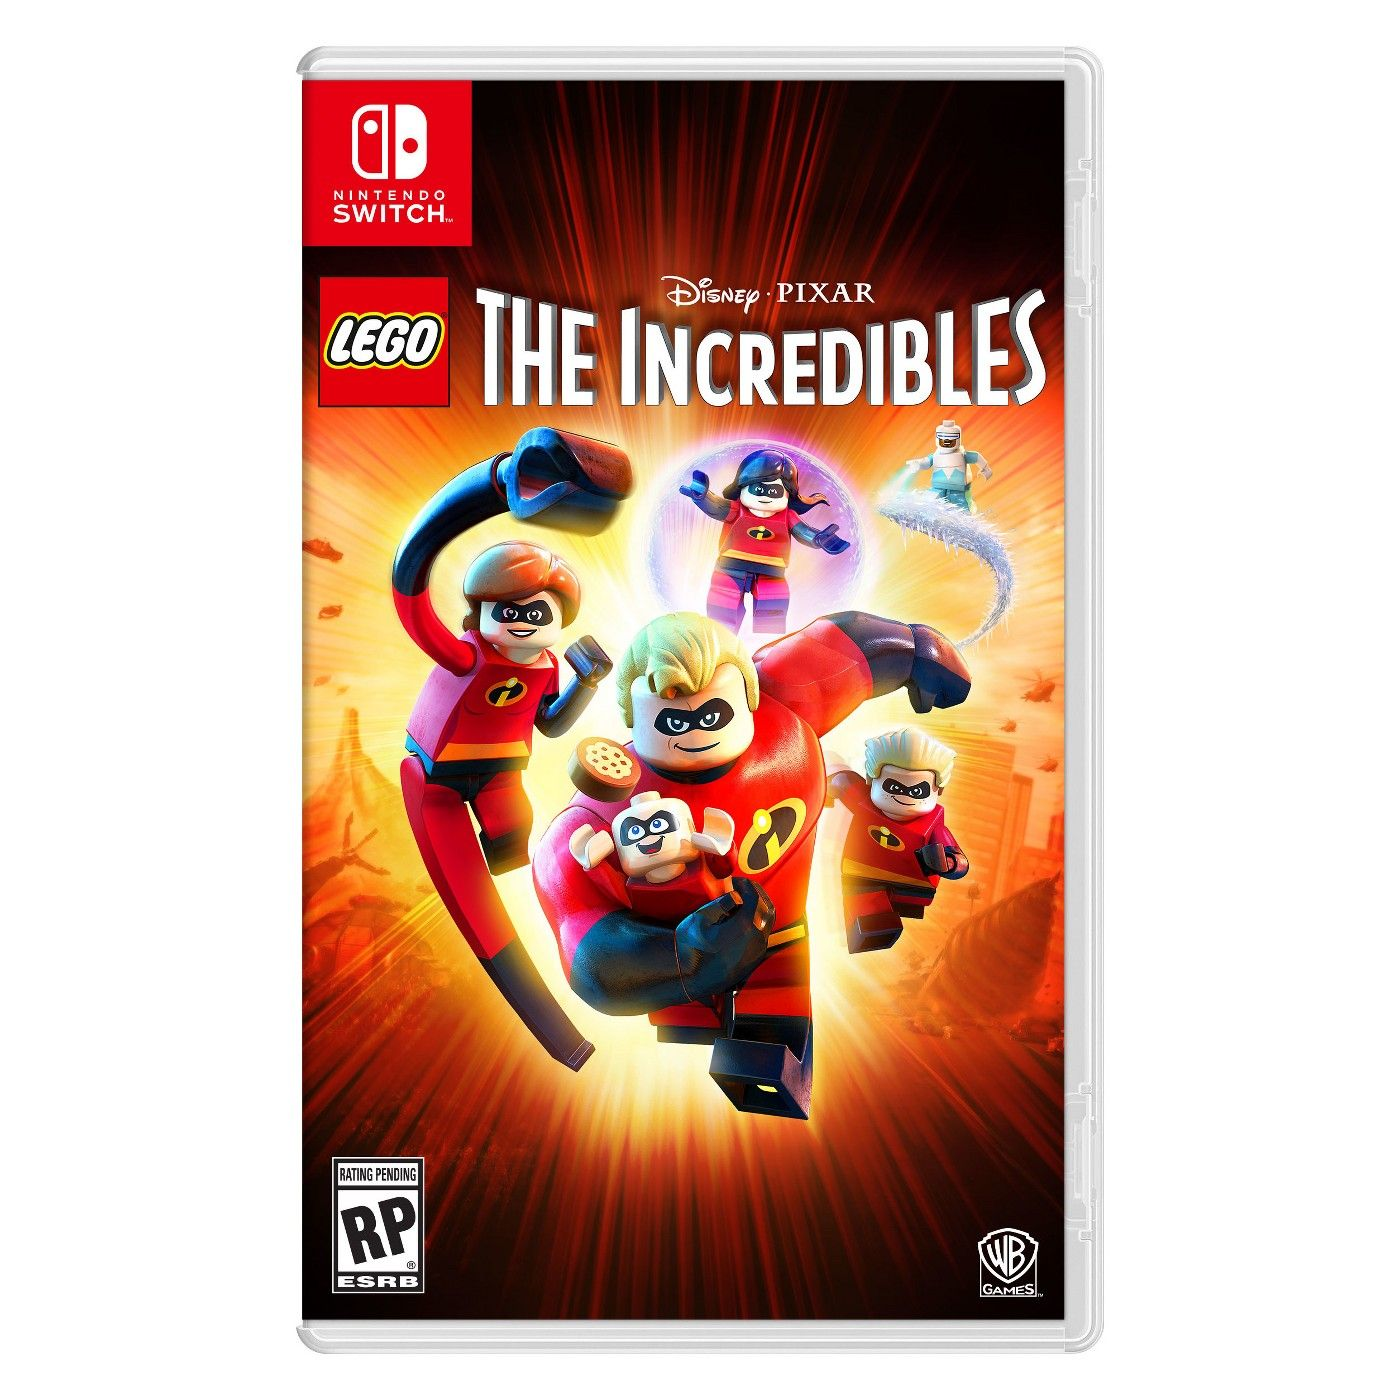 53529962 1 400 1 400 Pixels The Incredibles The Incredibles Games Lego Disney